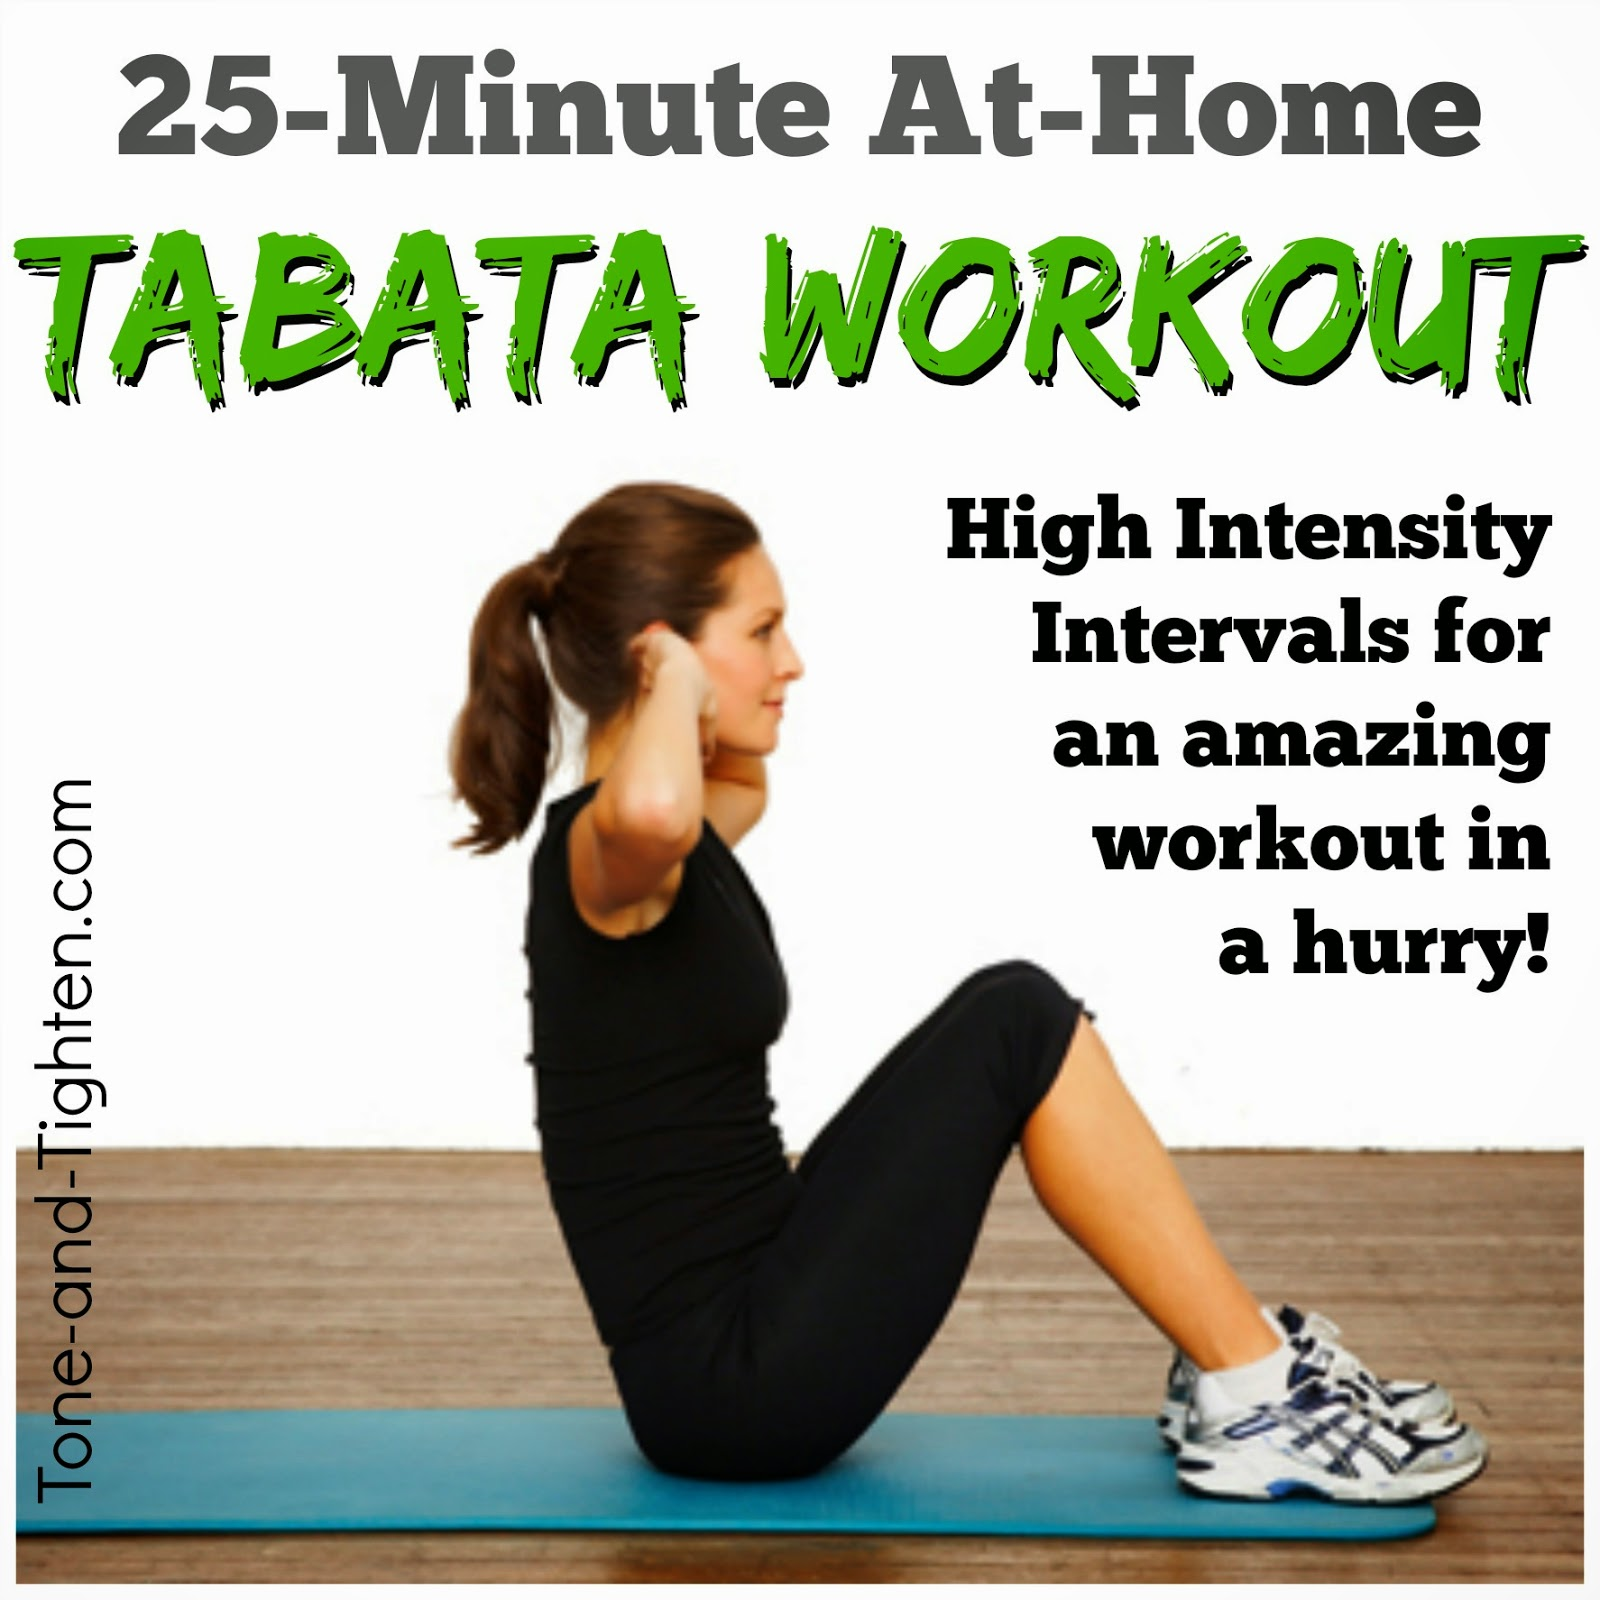 Interval workouts to tone and tighten